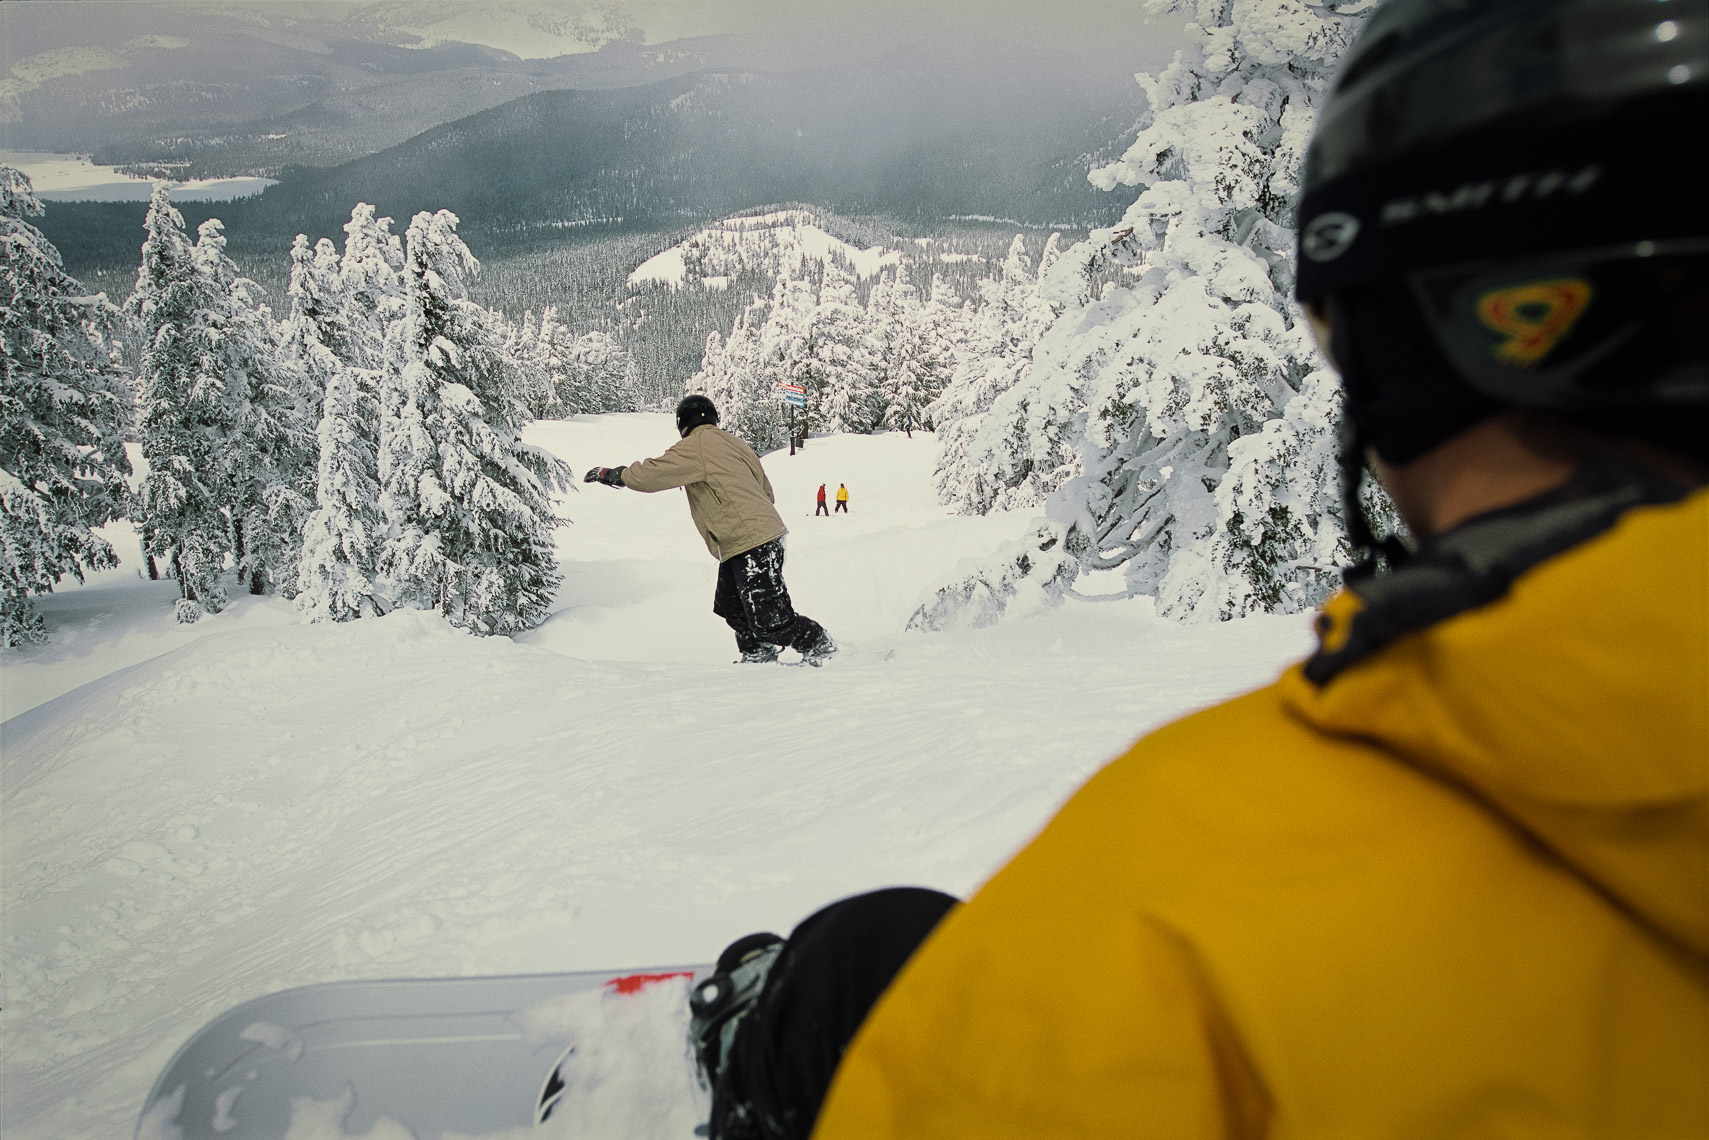 Snowboarding on Mt. Bachelor